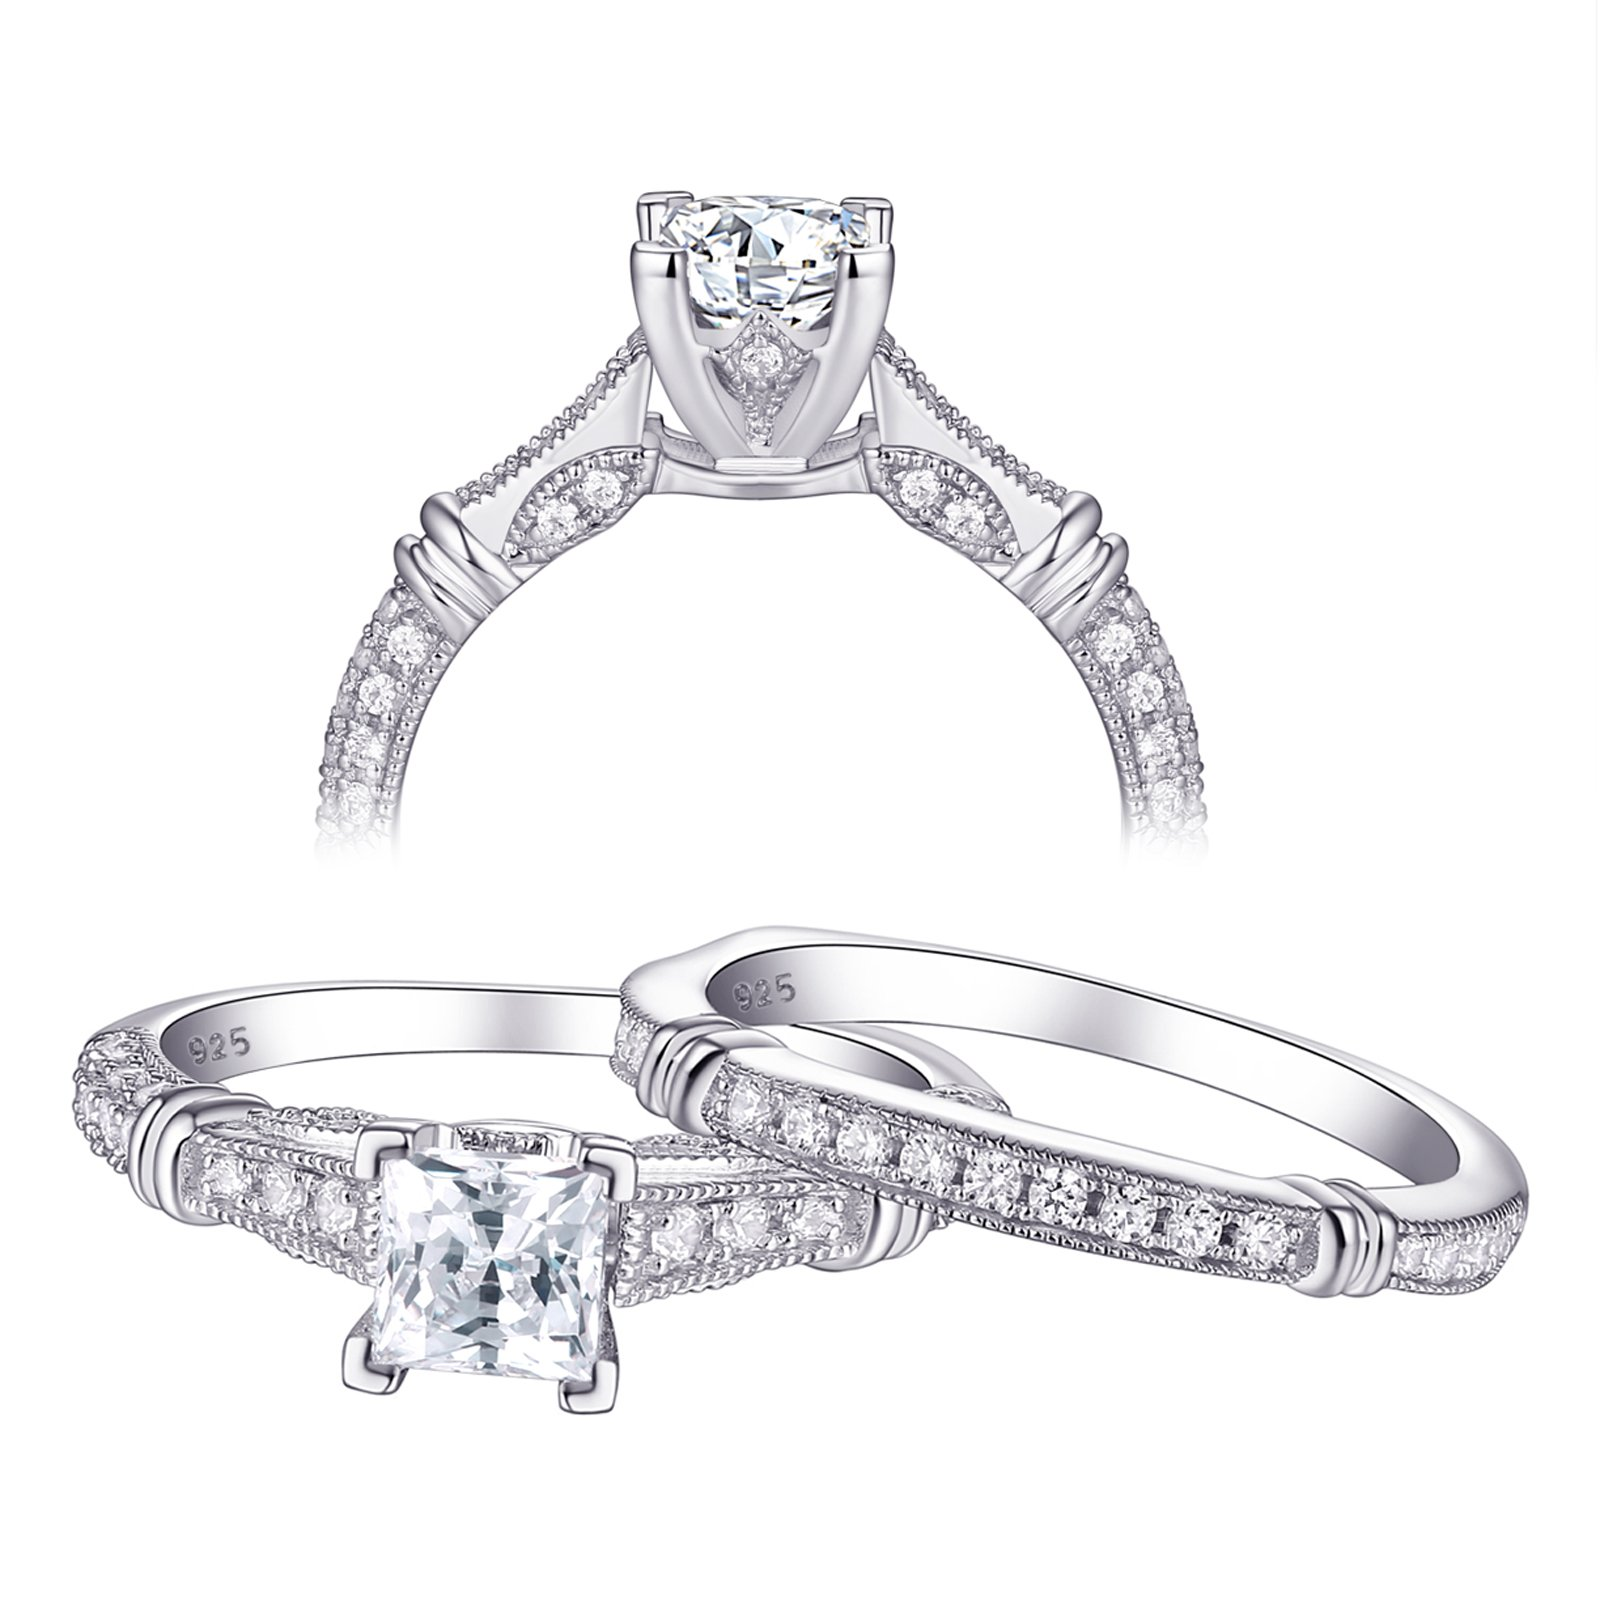 Newshe Jewellery Vintage Cz Engagement Wedding Ring Set For Women Sterling Silver Princess 1ct 8